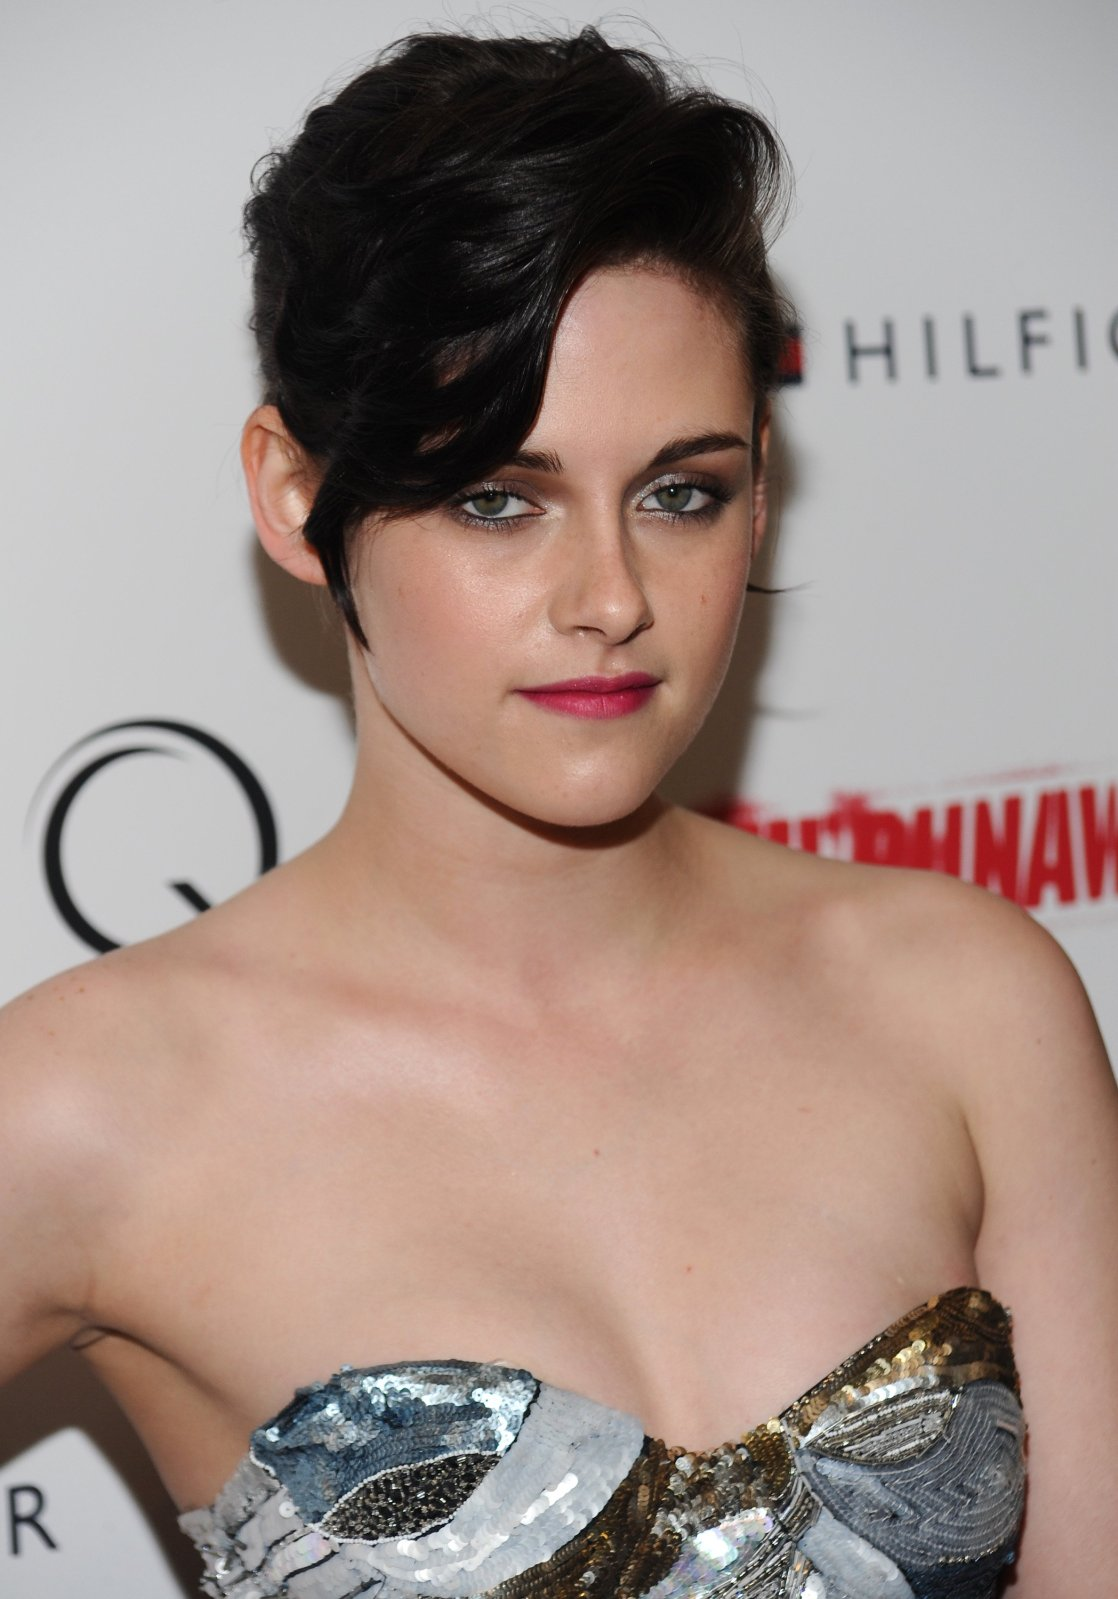 New Haircuts And Hairstyles: Kristen Stewart's French